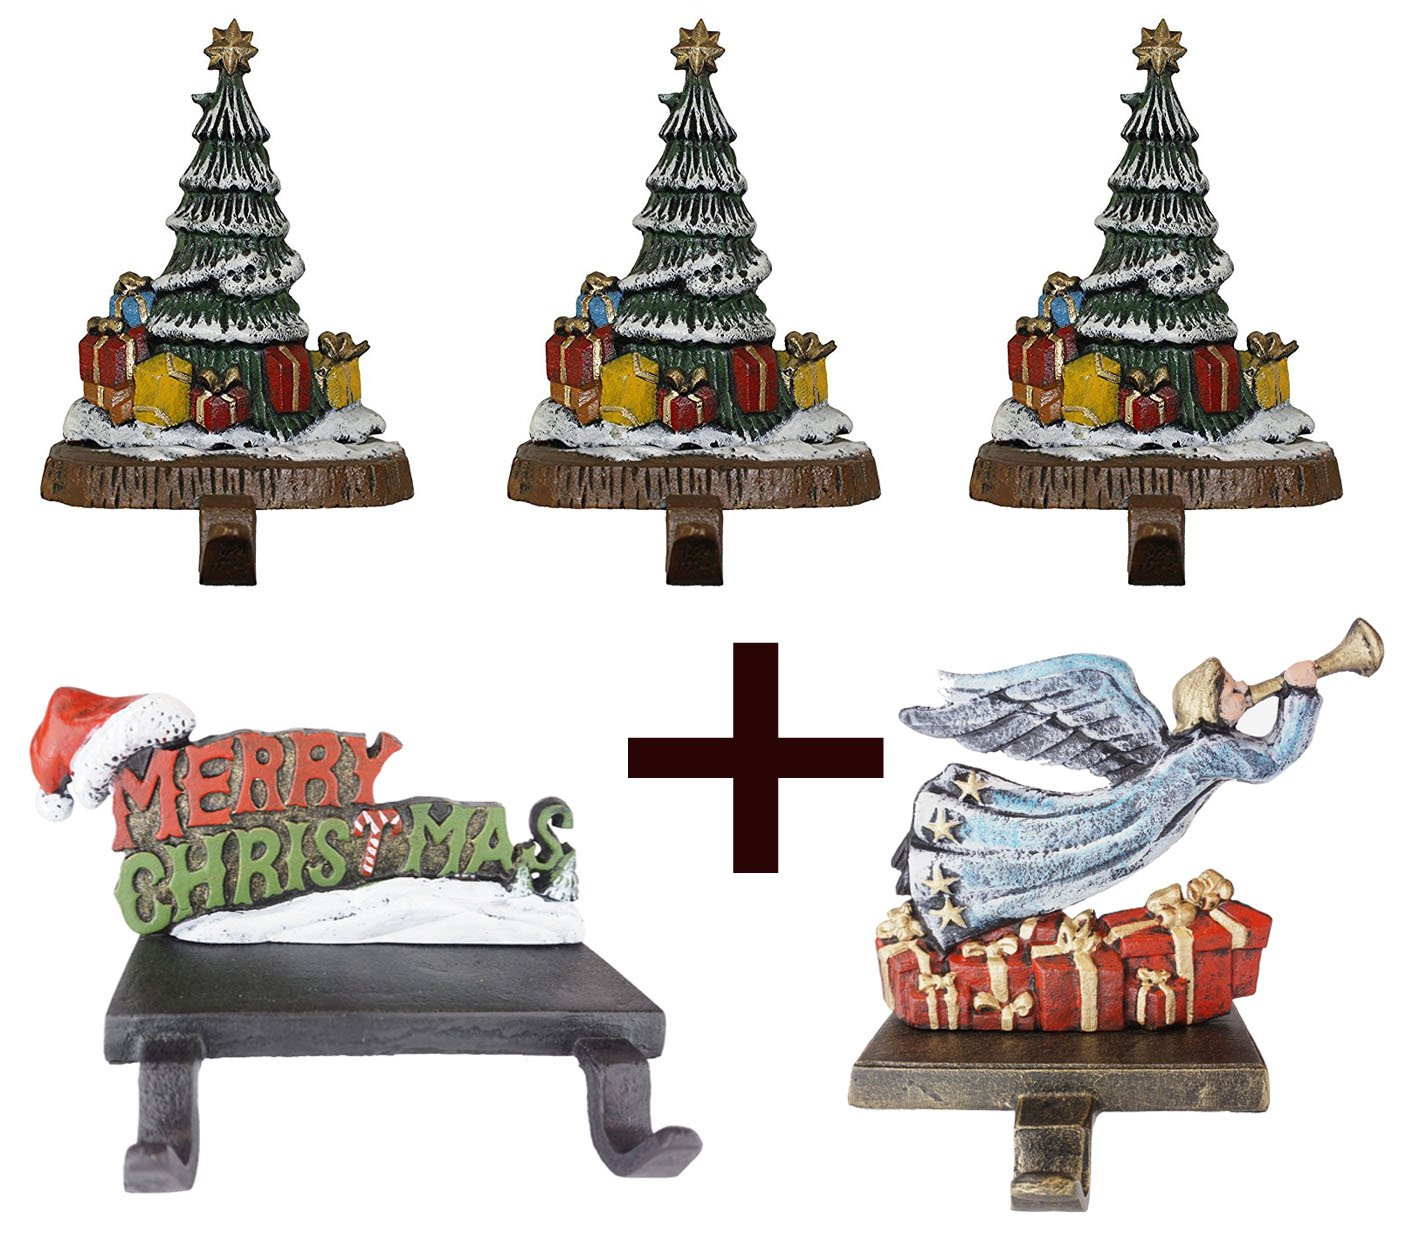 Lulu Decor, 100% Cast Iron Combo Deal, Decorative 6 stocking holders, includes 3 Christmas Trees, 1 Merry Christmas & 1 fairy (Combo deal 3 Trees, MC & Fiary) by LuLu